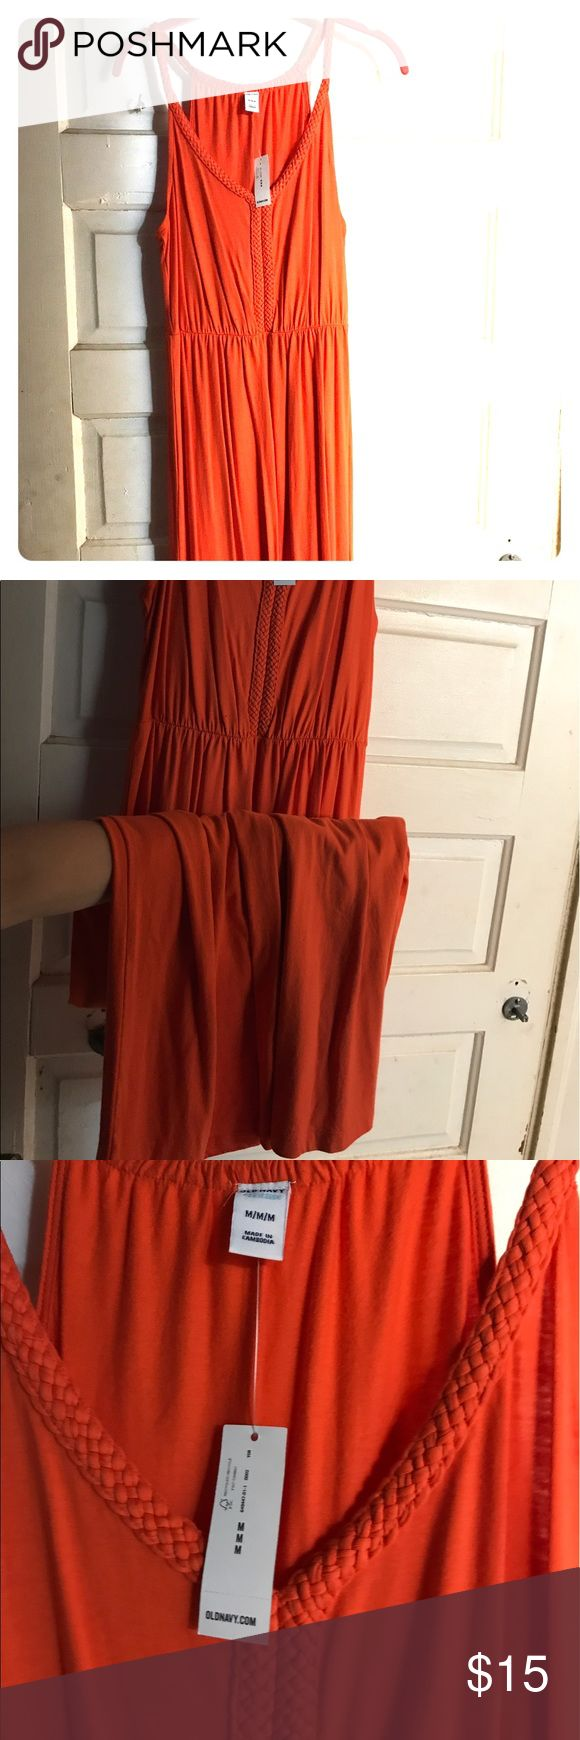 Old Navy orange Maxi dress! Old Navy orange Maxi dress. Never worn, NWT. Great for clemson football games! Old Navy Dresses Maxi